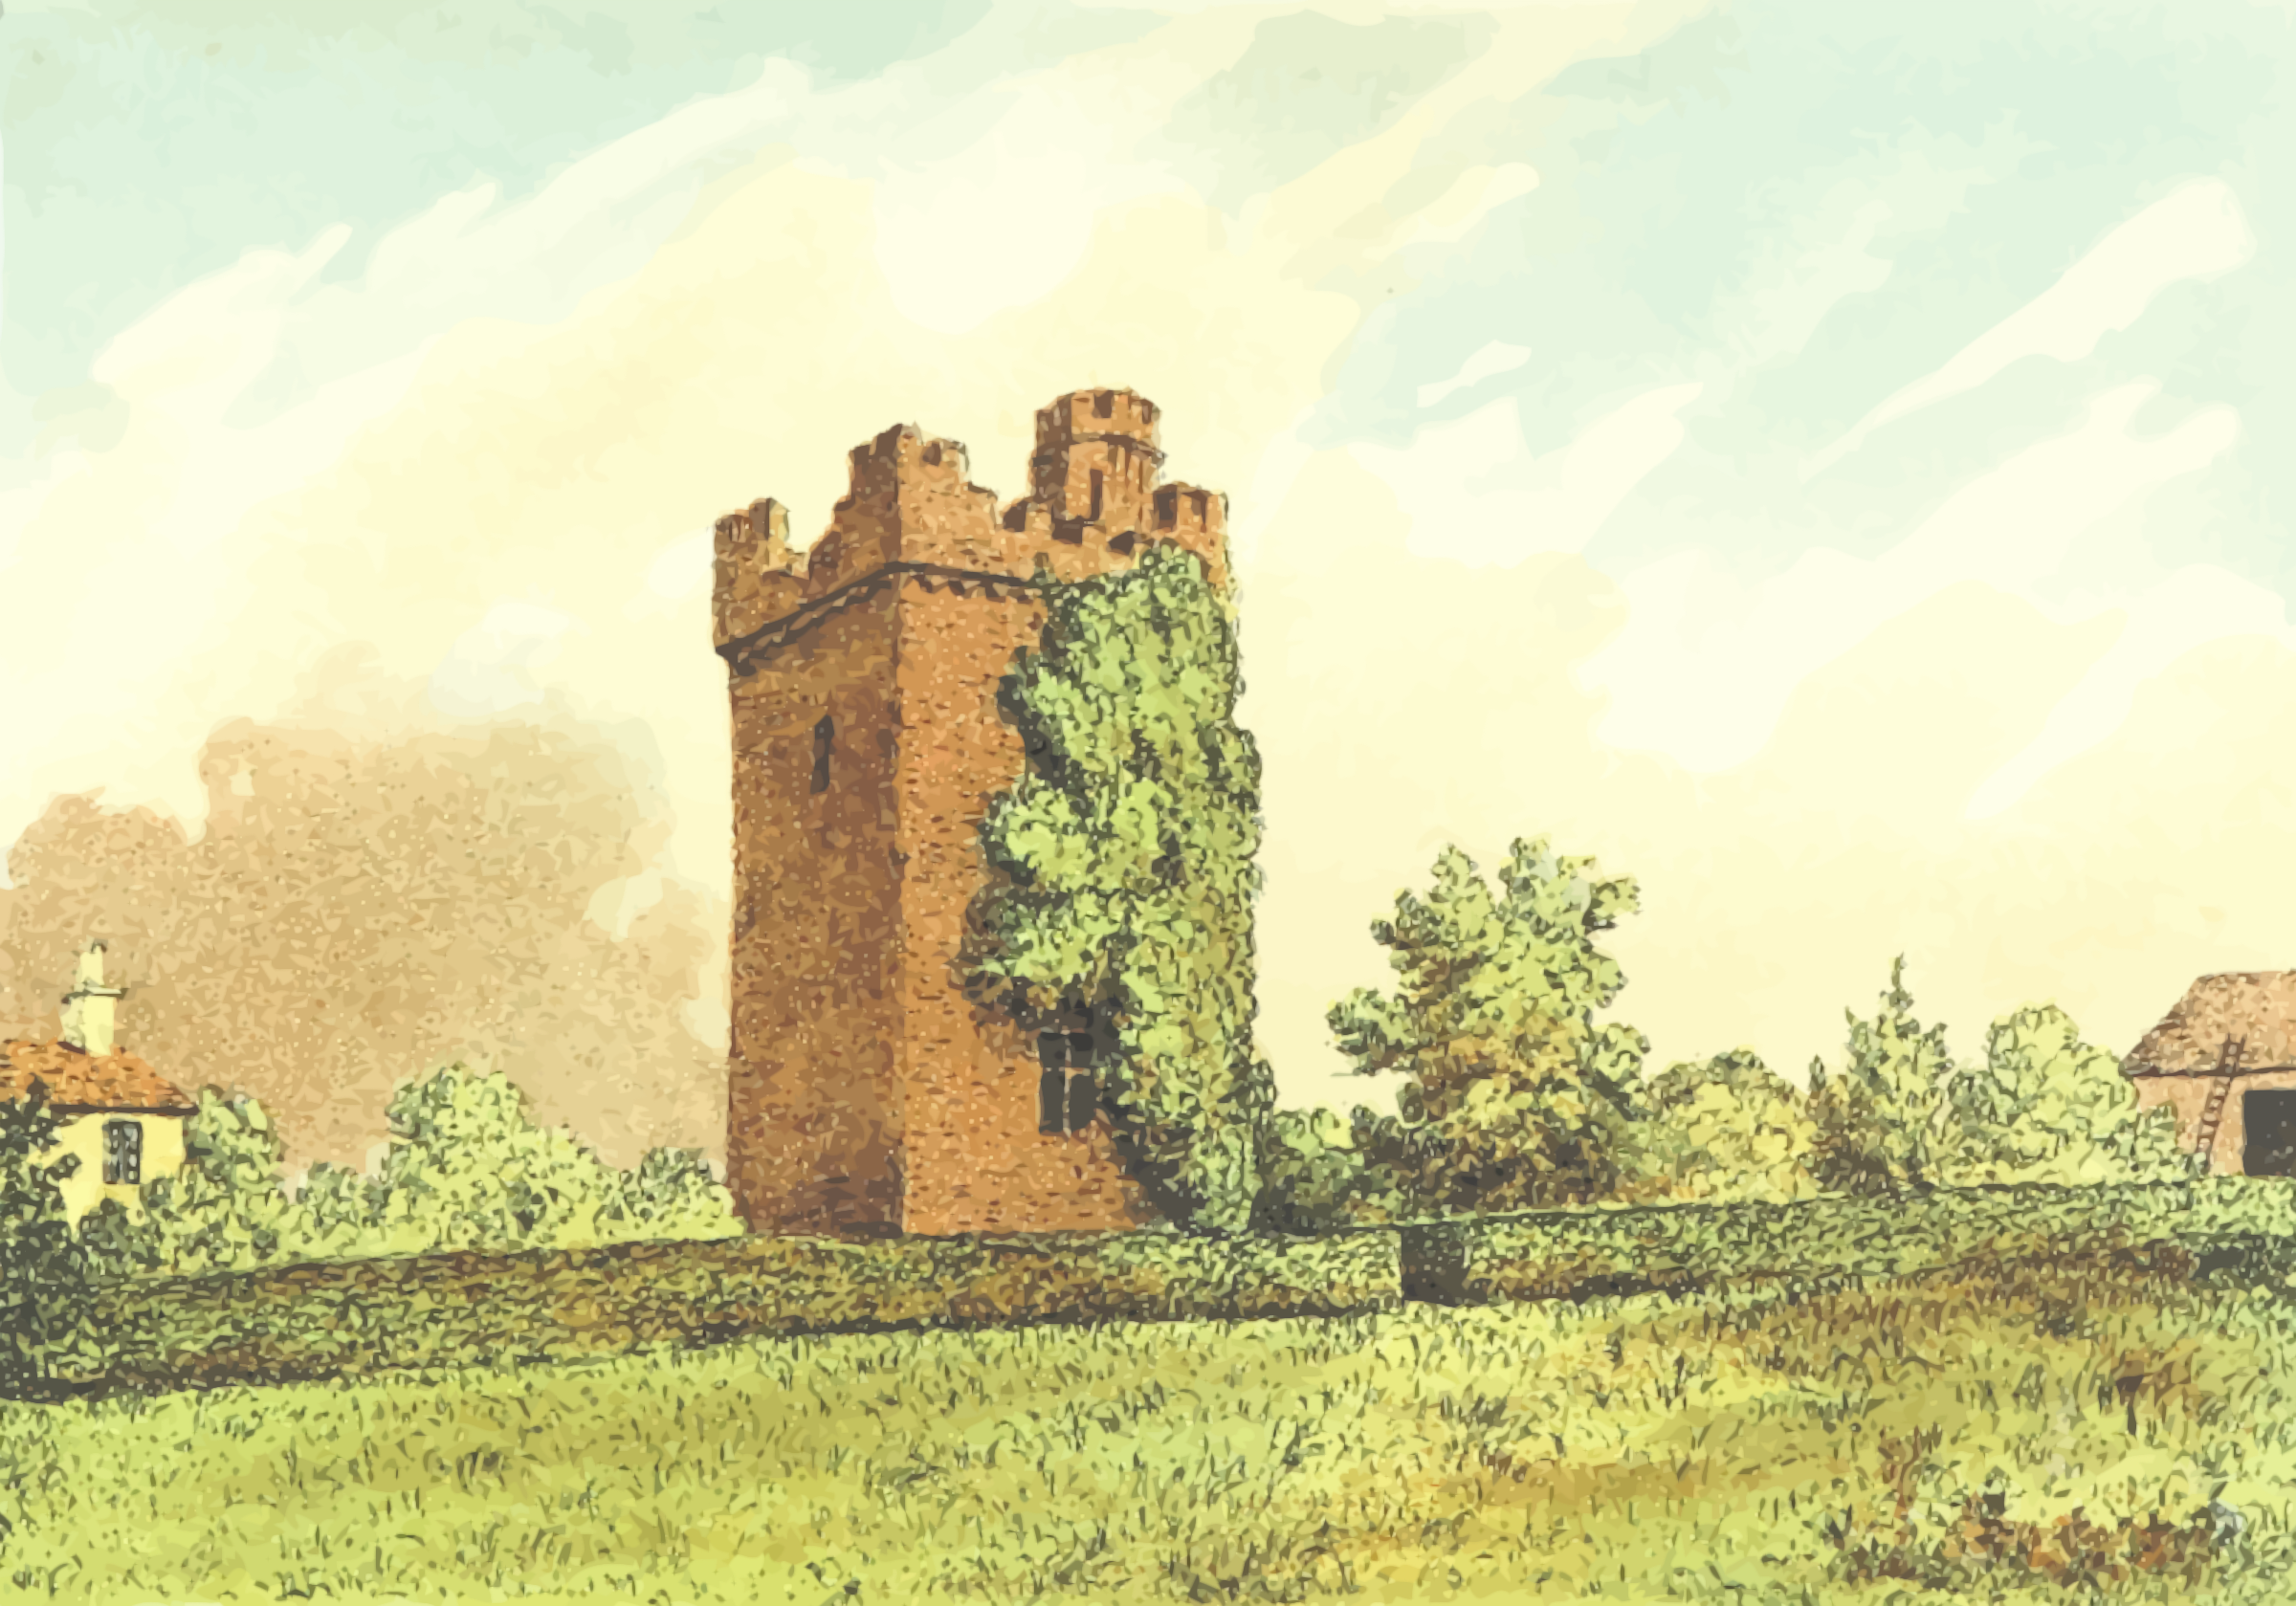 Rochford Tower by Firkin